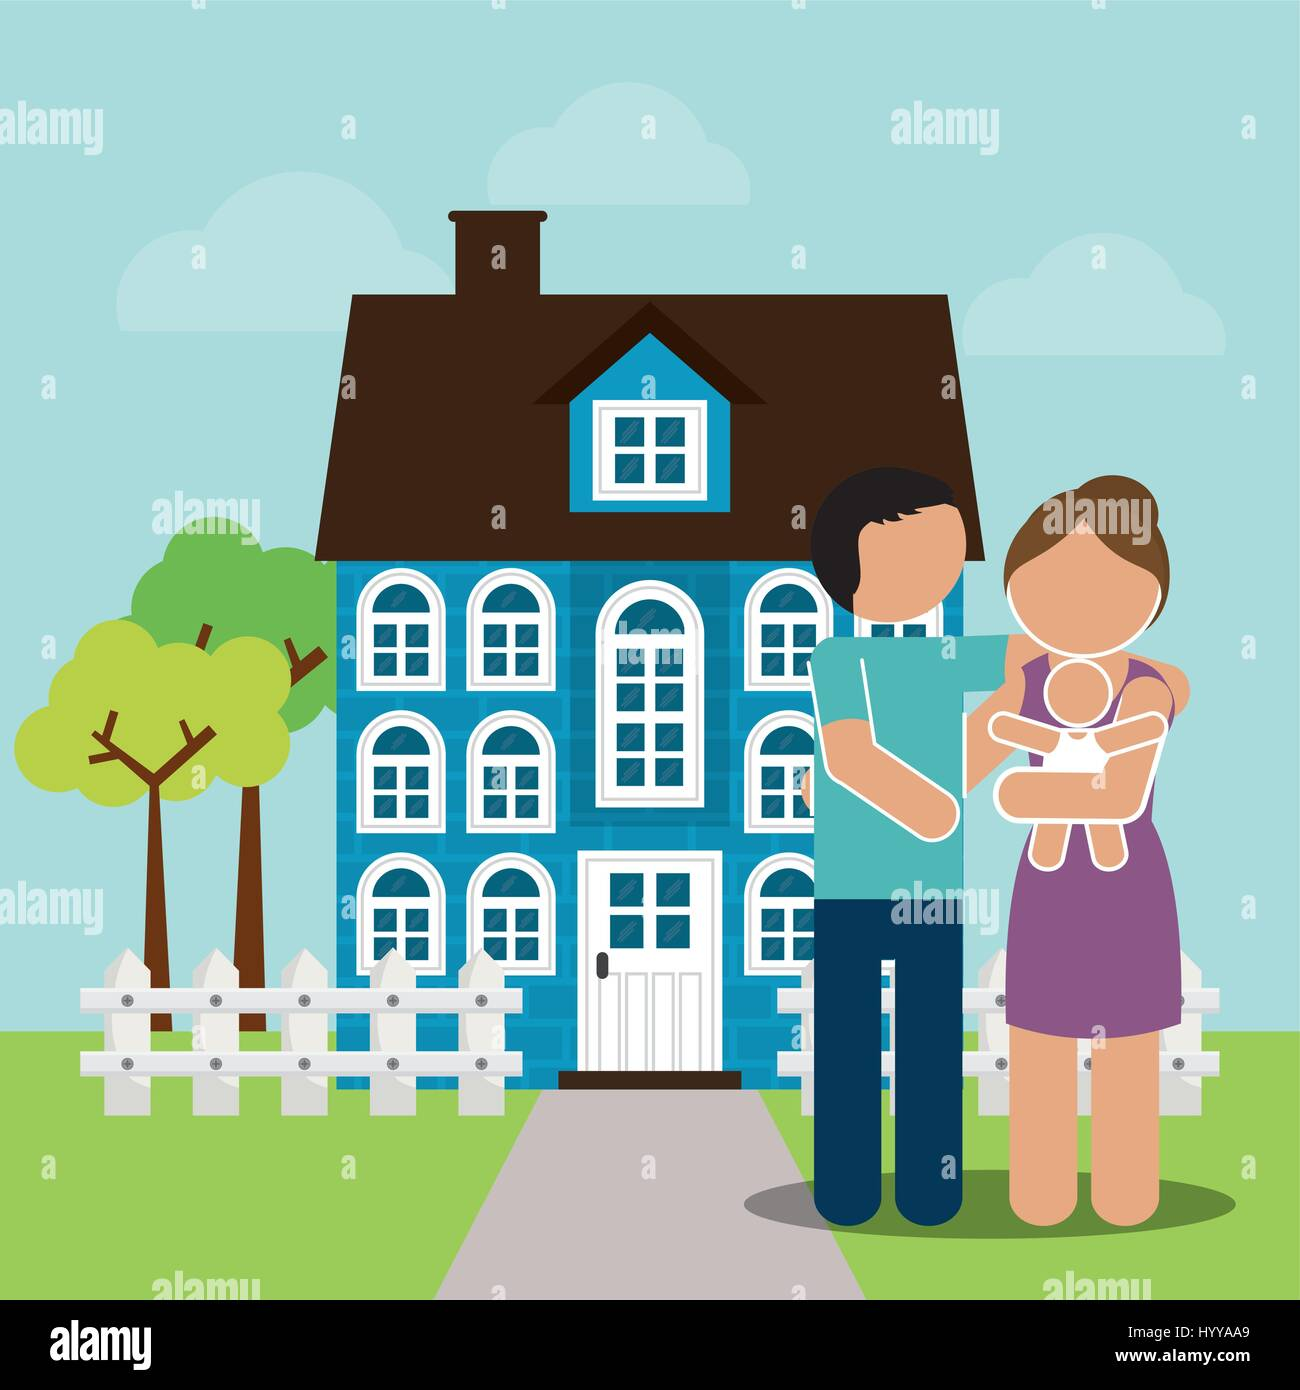 family home couple and baby image - Stock Vector